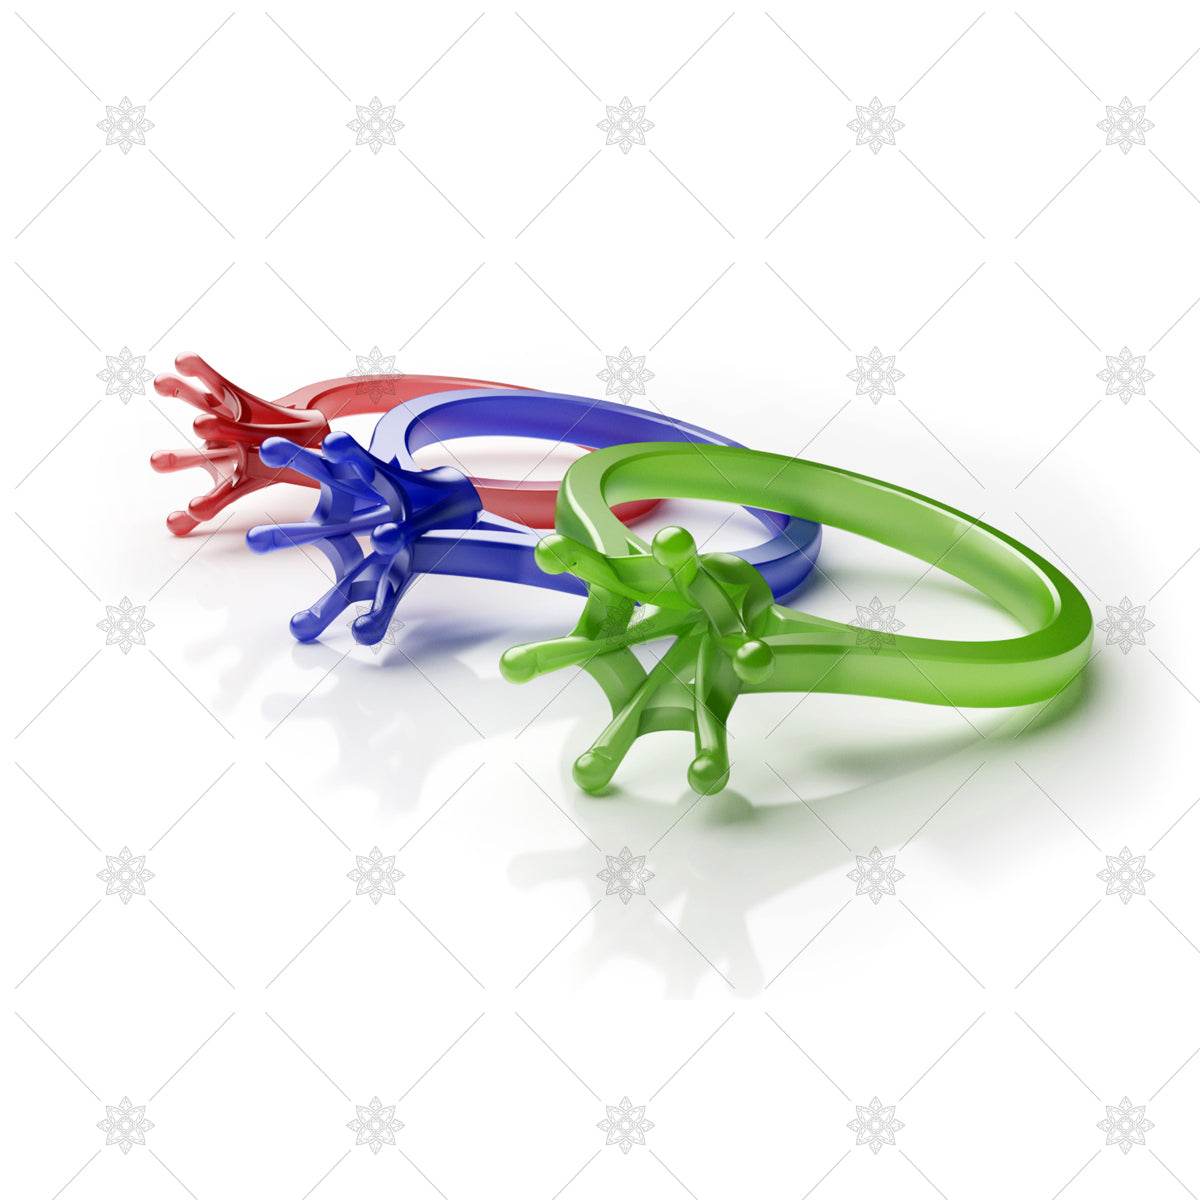 Ring Plastics Injection moulded jewellery